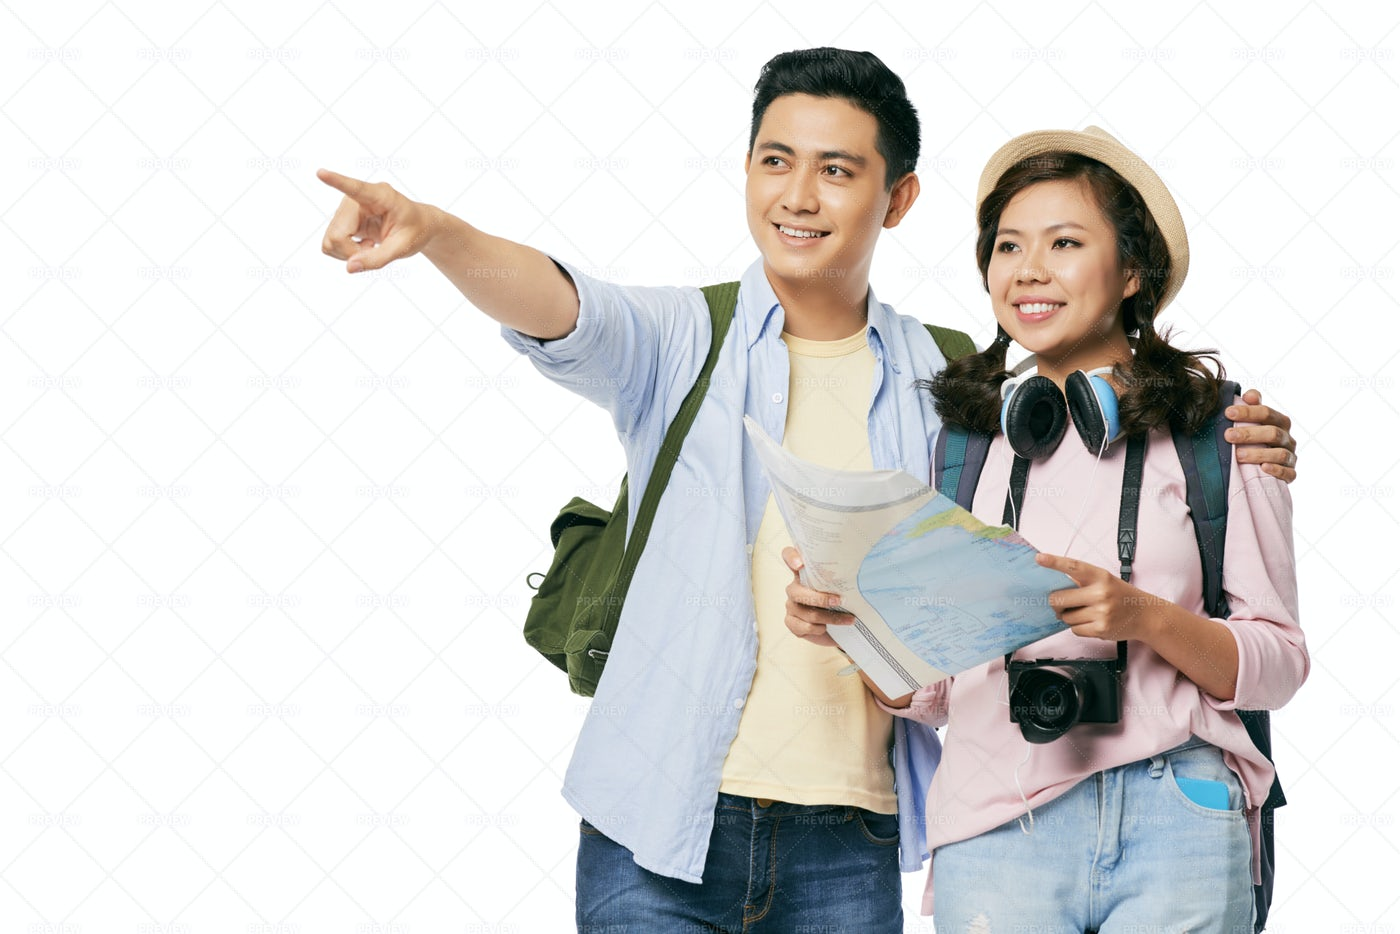 Travelers With Map: Stock Photos